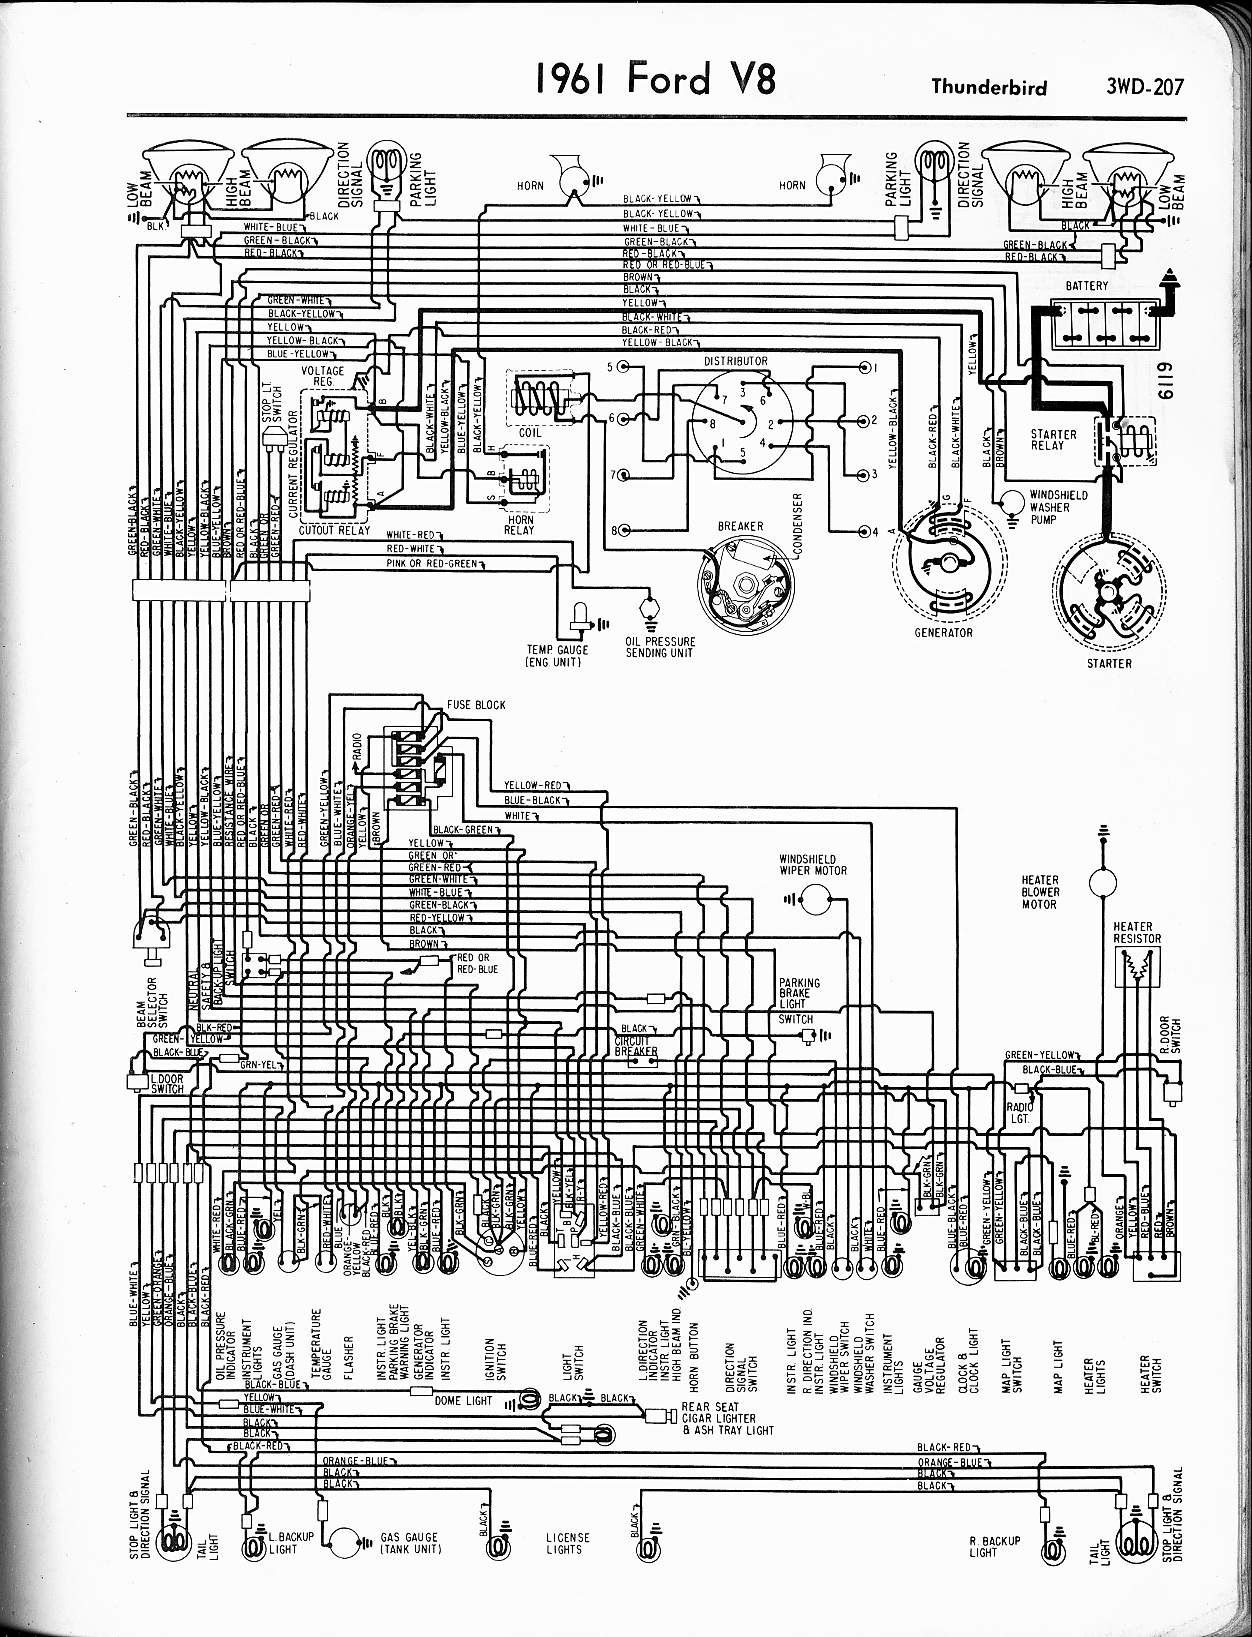 1966 Ford Wiring Harness Expert Category Circuit Diagram 65 Mustang Heater Pick Up Simple Rh David Huggett Co Uk Fairlane